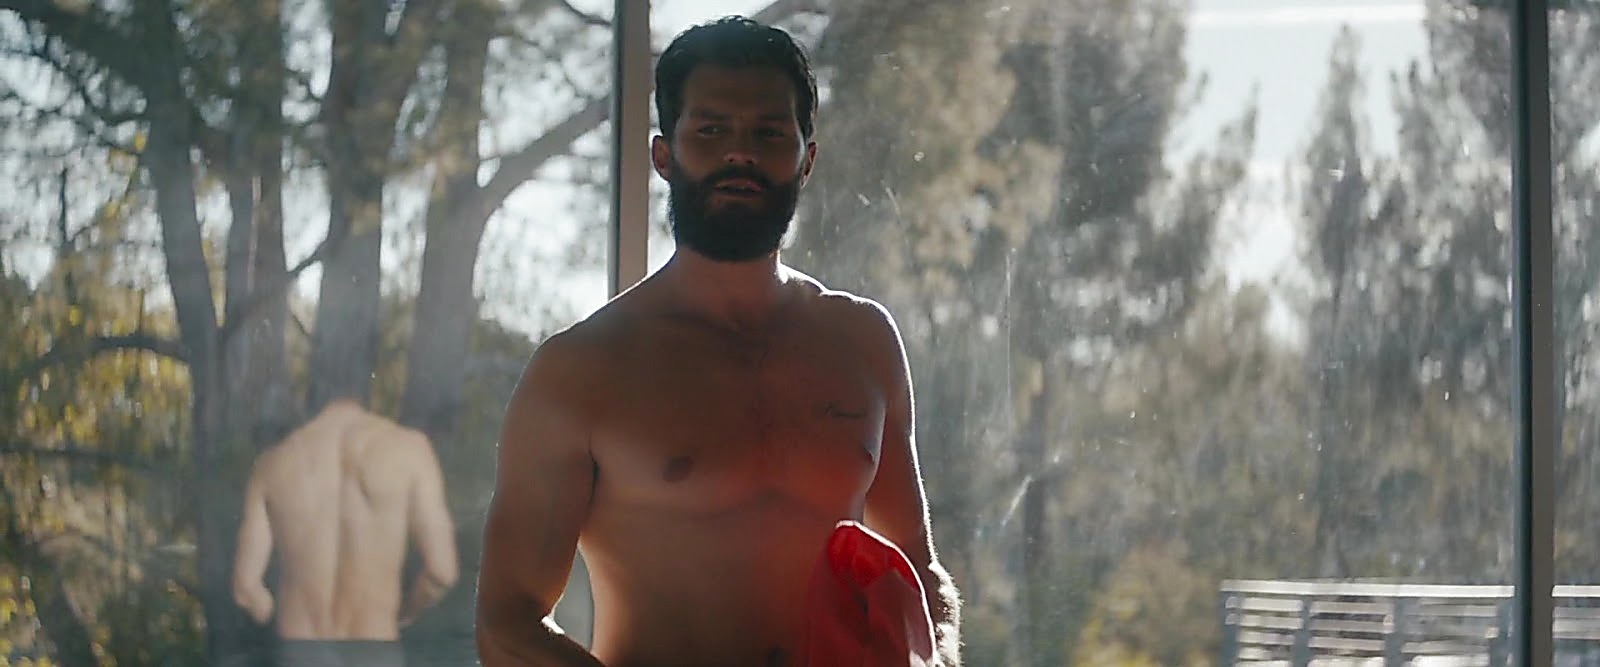 Jamie Dornan sexy shirtless scene February 8, 2019, 11am